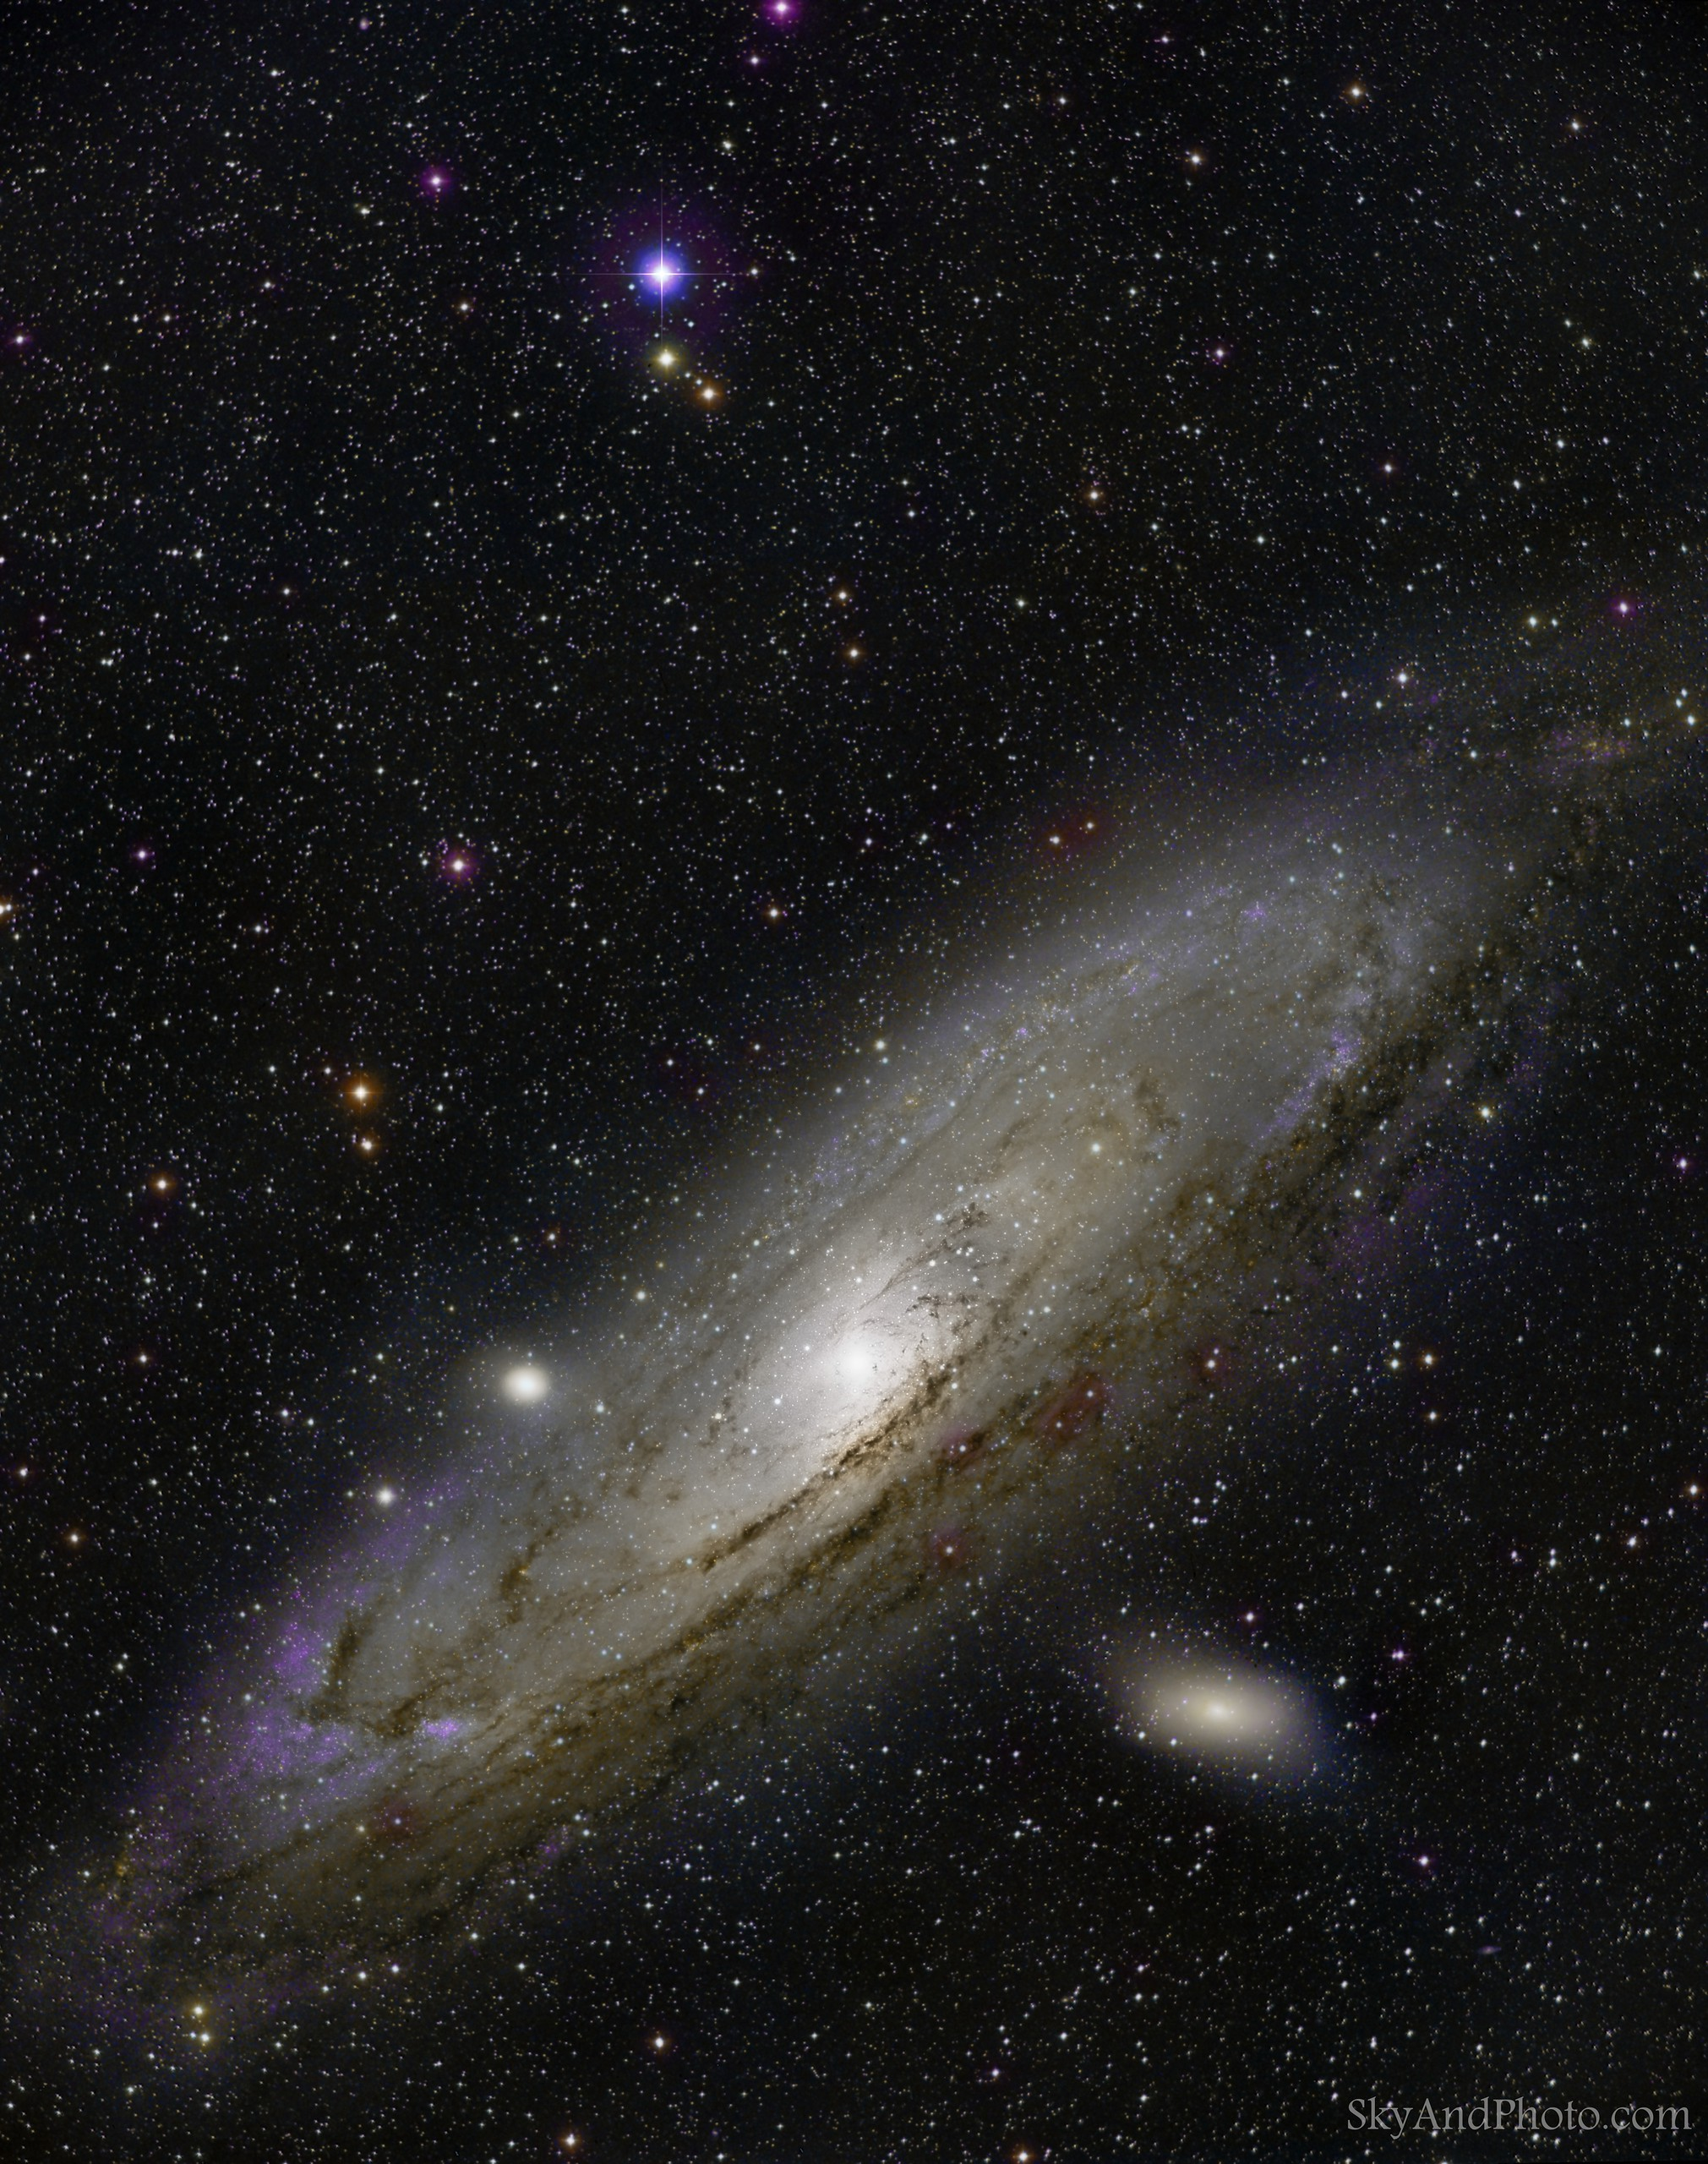 """ANDROMEDA 3 Nov 2018, Seville, Spain Telescope  Superapocromátic TMB 130/780 CNC II. Reducer Massimo Riccardi x0,75 de 81 mm. 585 mm a F4,5. Mount Takahashi EM200 Temma2. Camera  CCD QHY 16200A-FW7 Guided with QHY OAG with CCD  QHY5 LII. Filtros  L, R, G, B , of 2"""" Optolong Exposures 10x600`  and 10x60"""" L ,  10x300` and 10x300"""" ,  bin 2  R, G, B."""